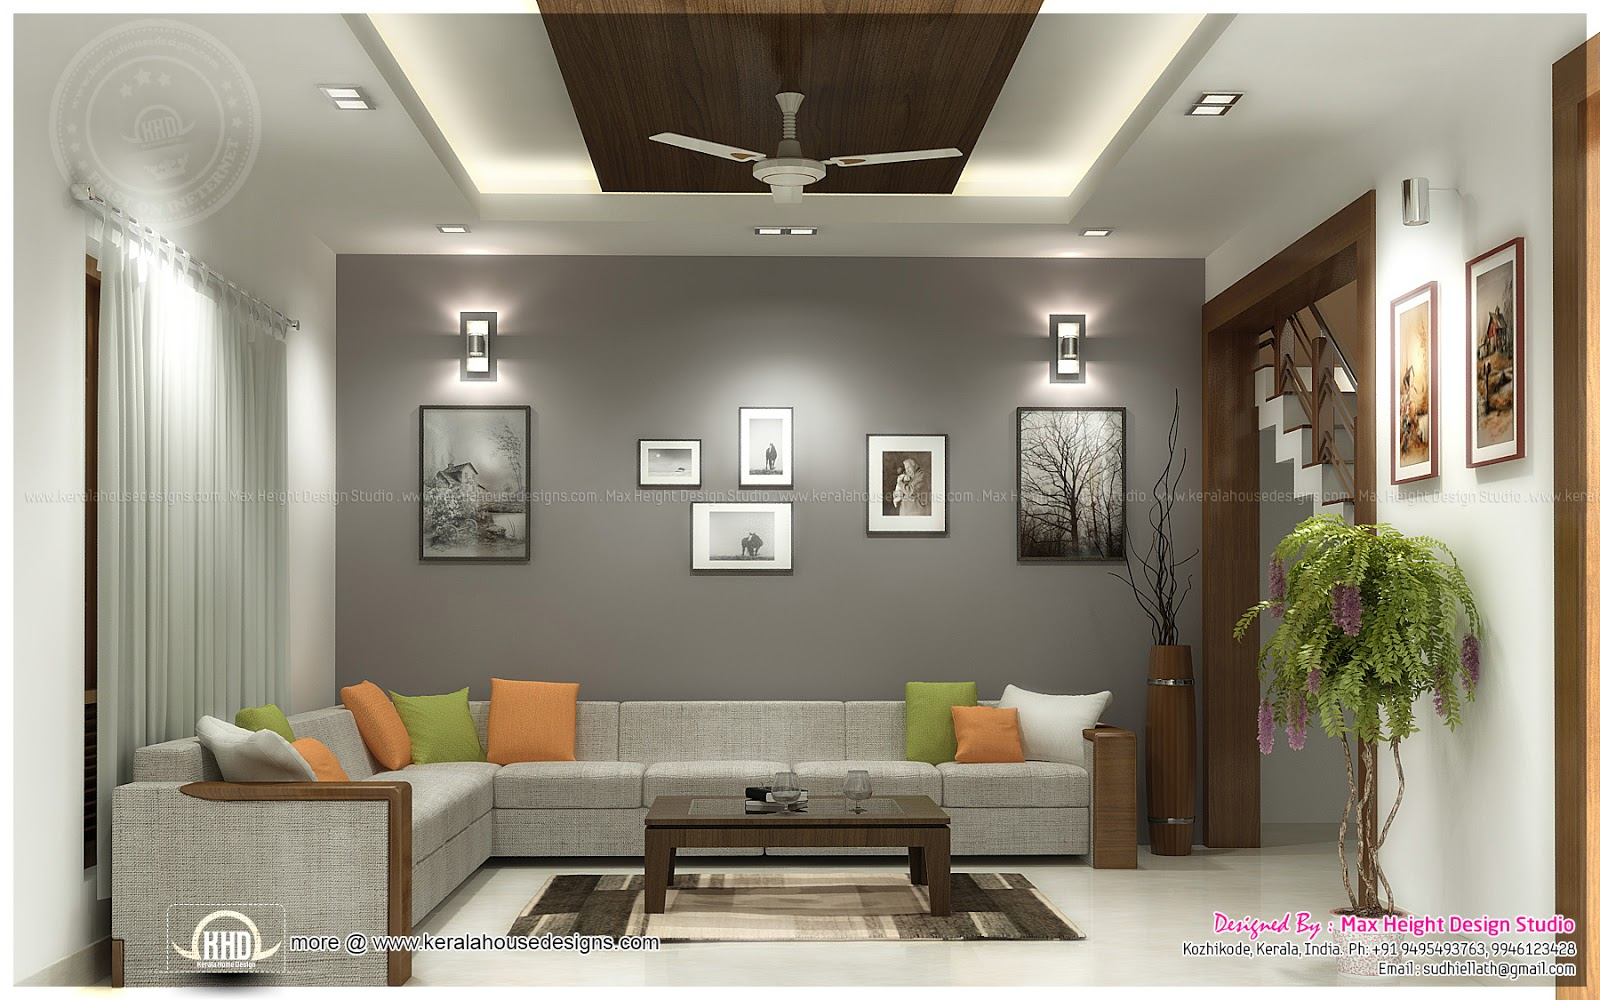 Beautiful interior ideas for home kerala home design and for Home design interior design